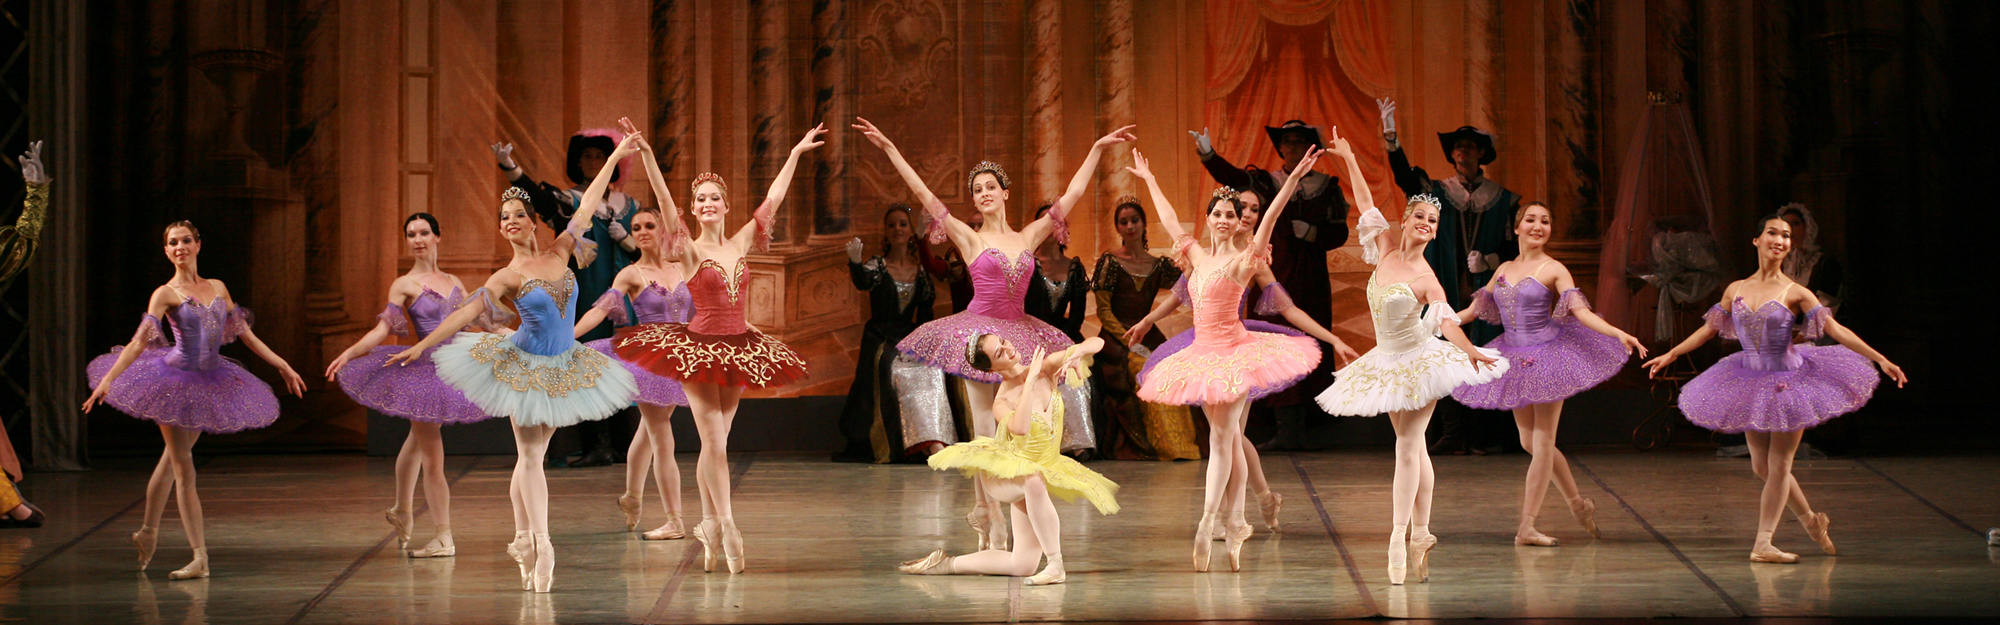 "Russian National Ballet: ""The Sleeping Beauty"""